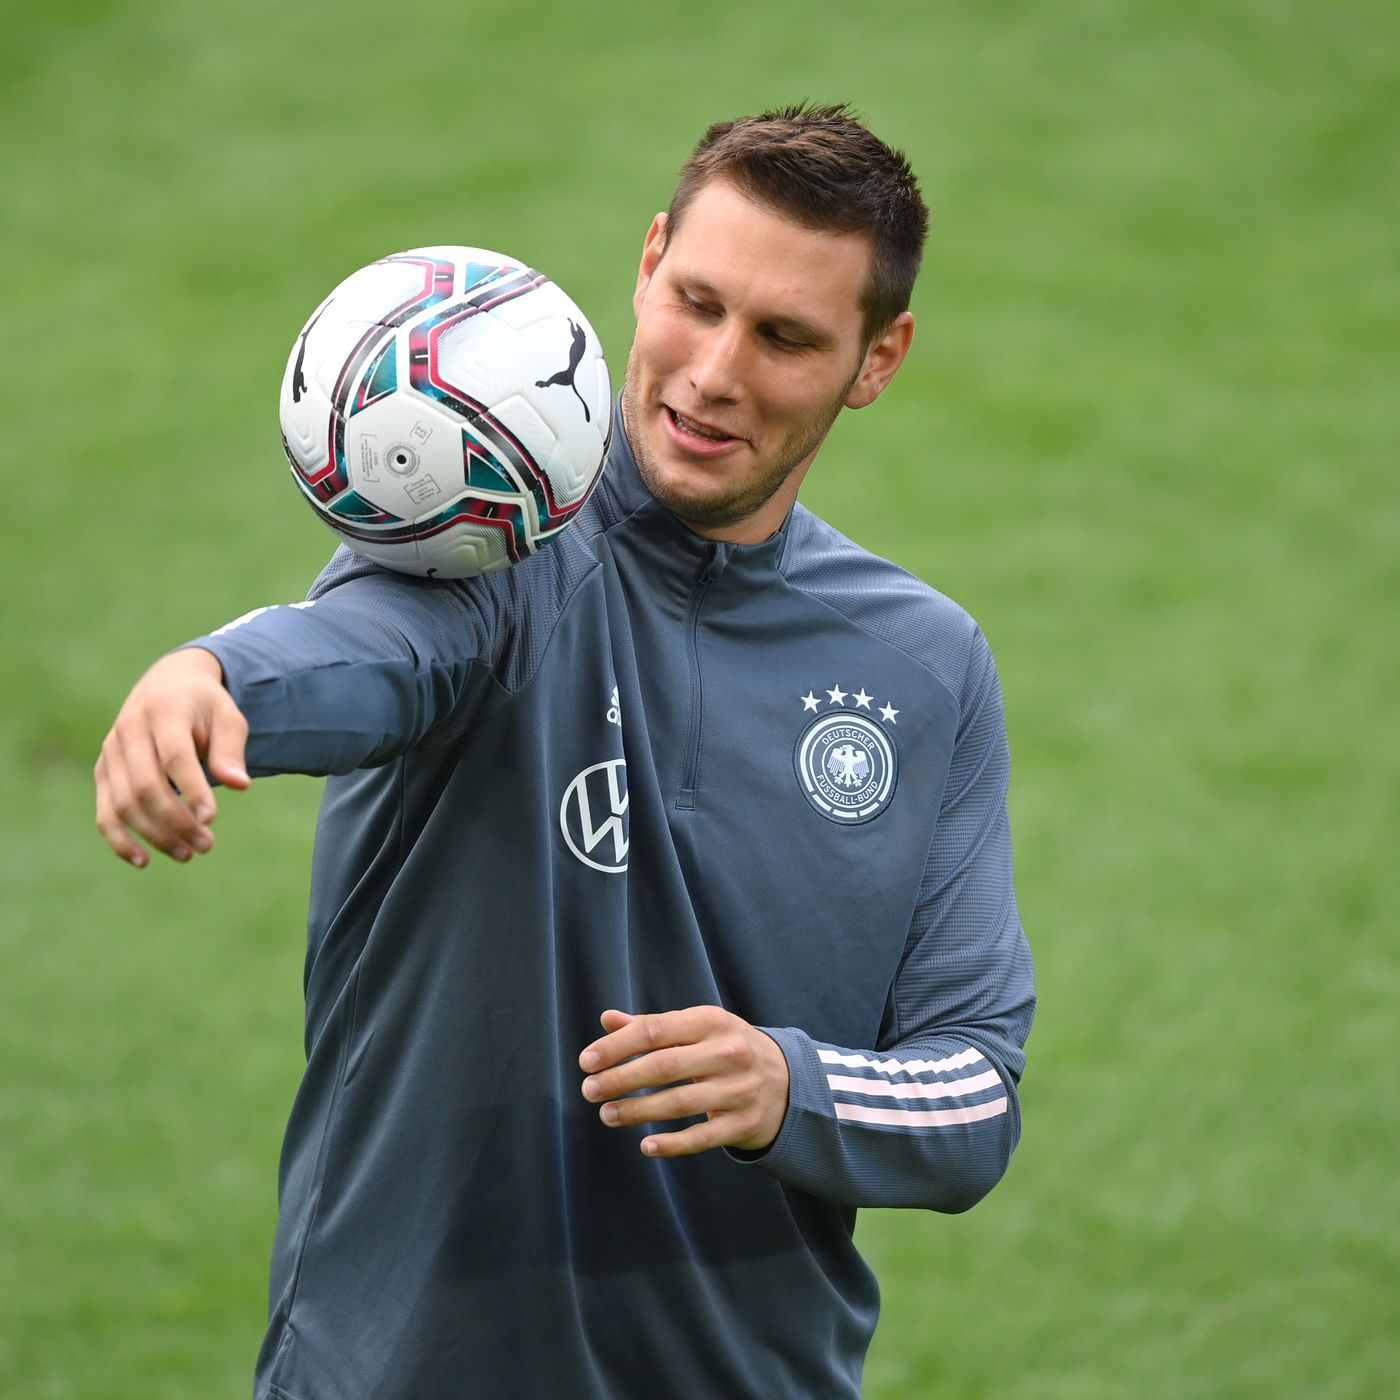 Midweek Warm Up Niklas Sule S Impressive Return And Future Prospects Bayern Munich Vs Atletico Madrid Predictions An Arptrain Anthem And More Bavarian Football Works